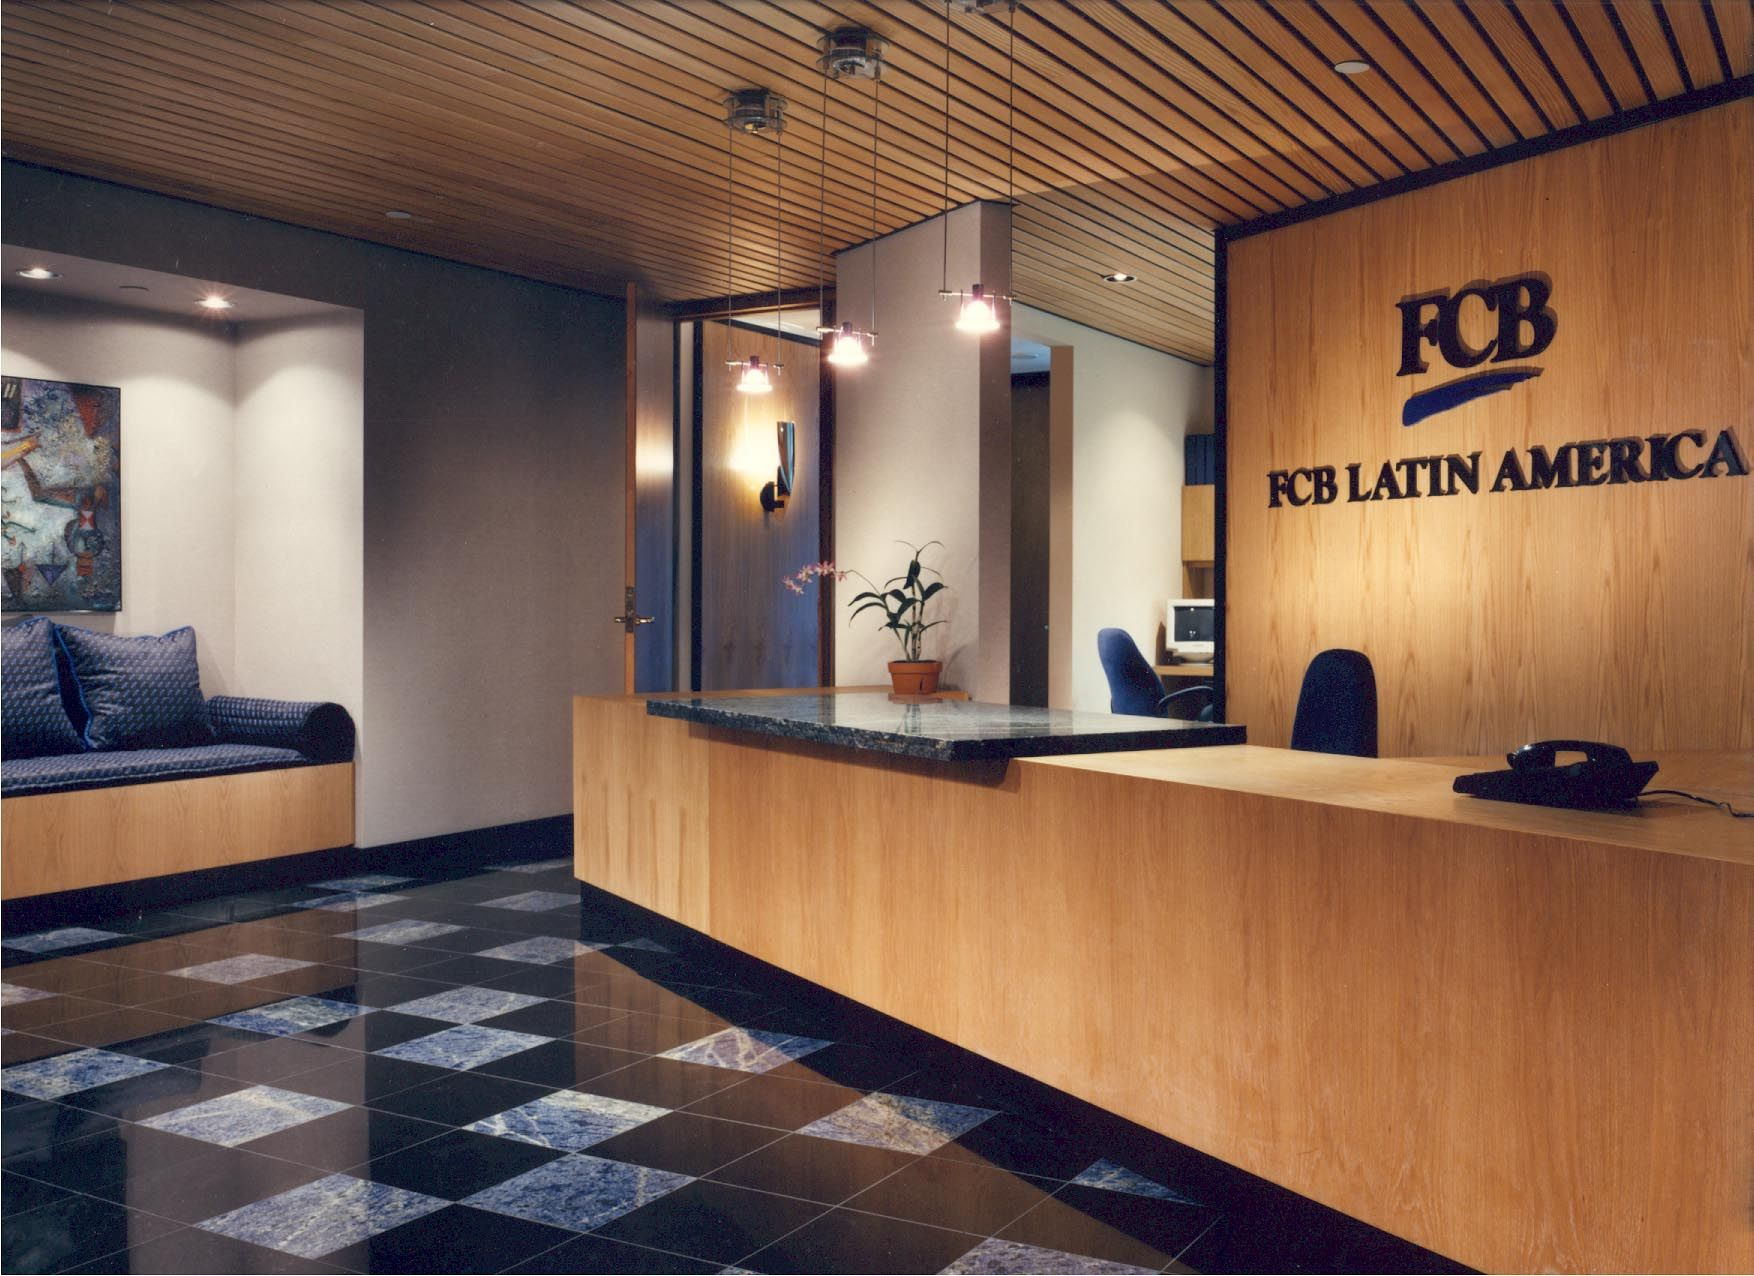 office reception area reception areas office. Cool Office Reception Areas. Area Interior Design 3a038eac300cb5cc8fd53d096a0ebc28 377176537522353274. Ceiling Areas N